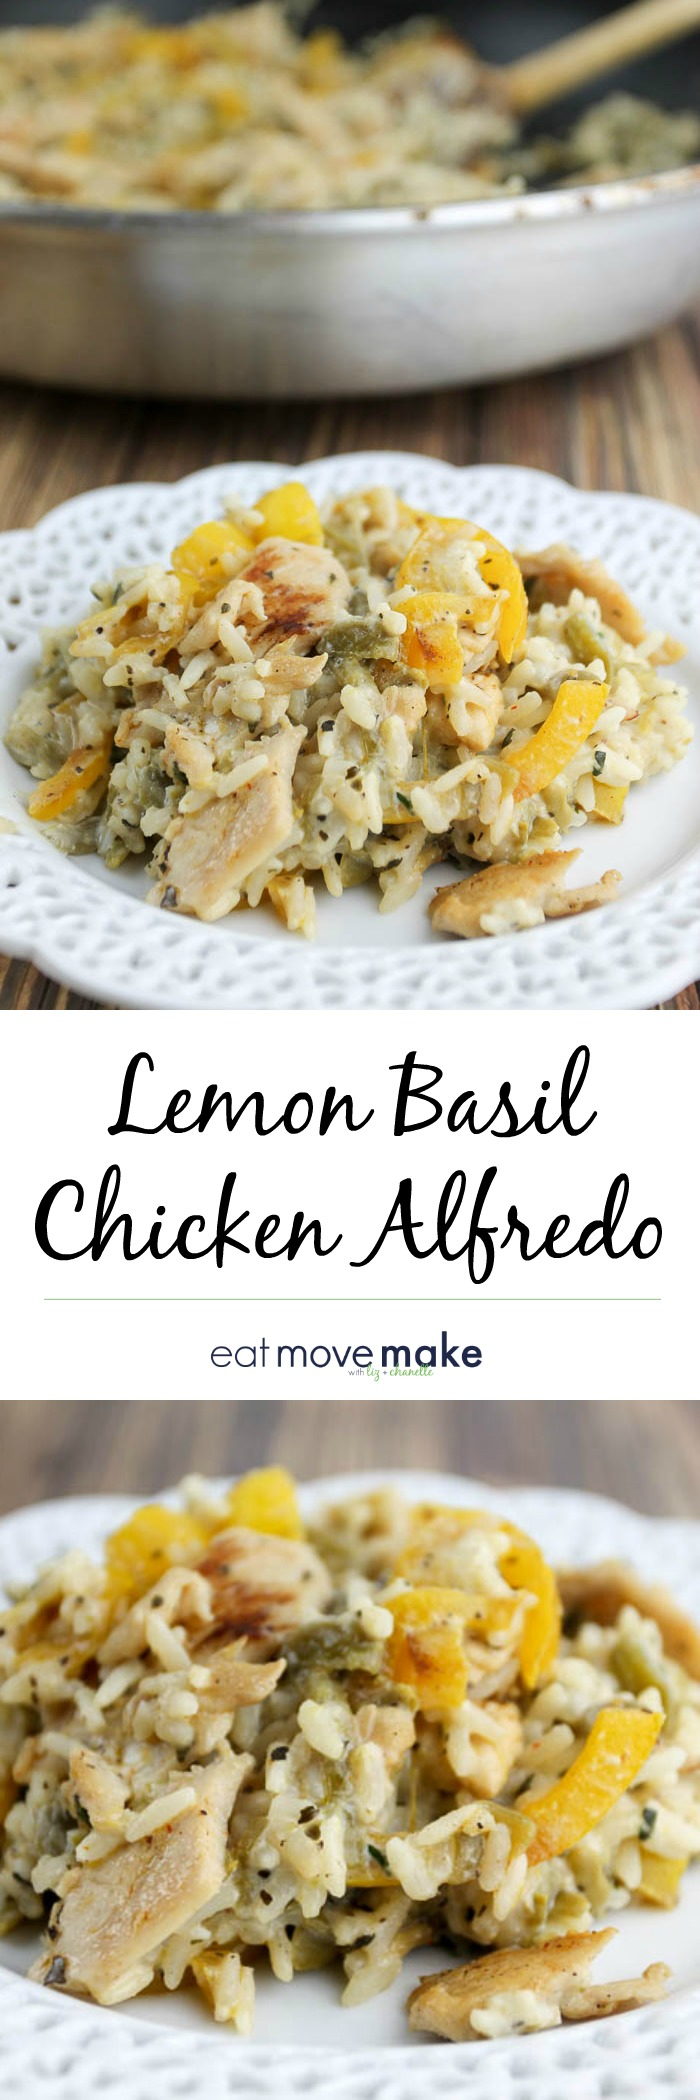 lemon basil chicken alfredo recipe